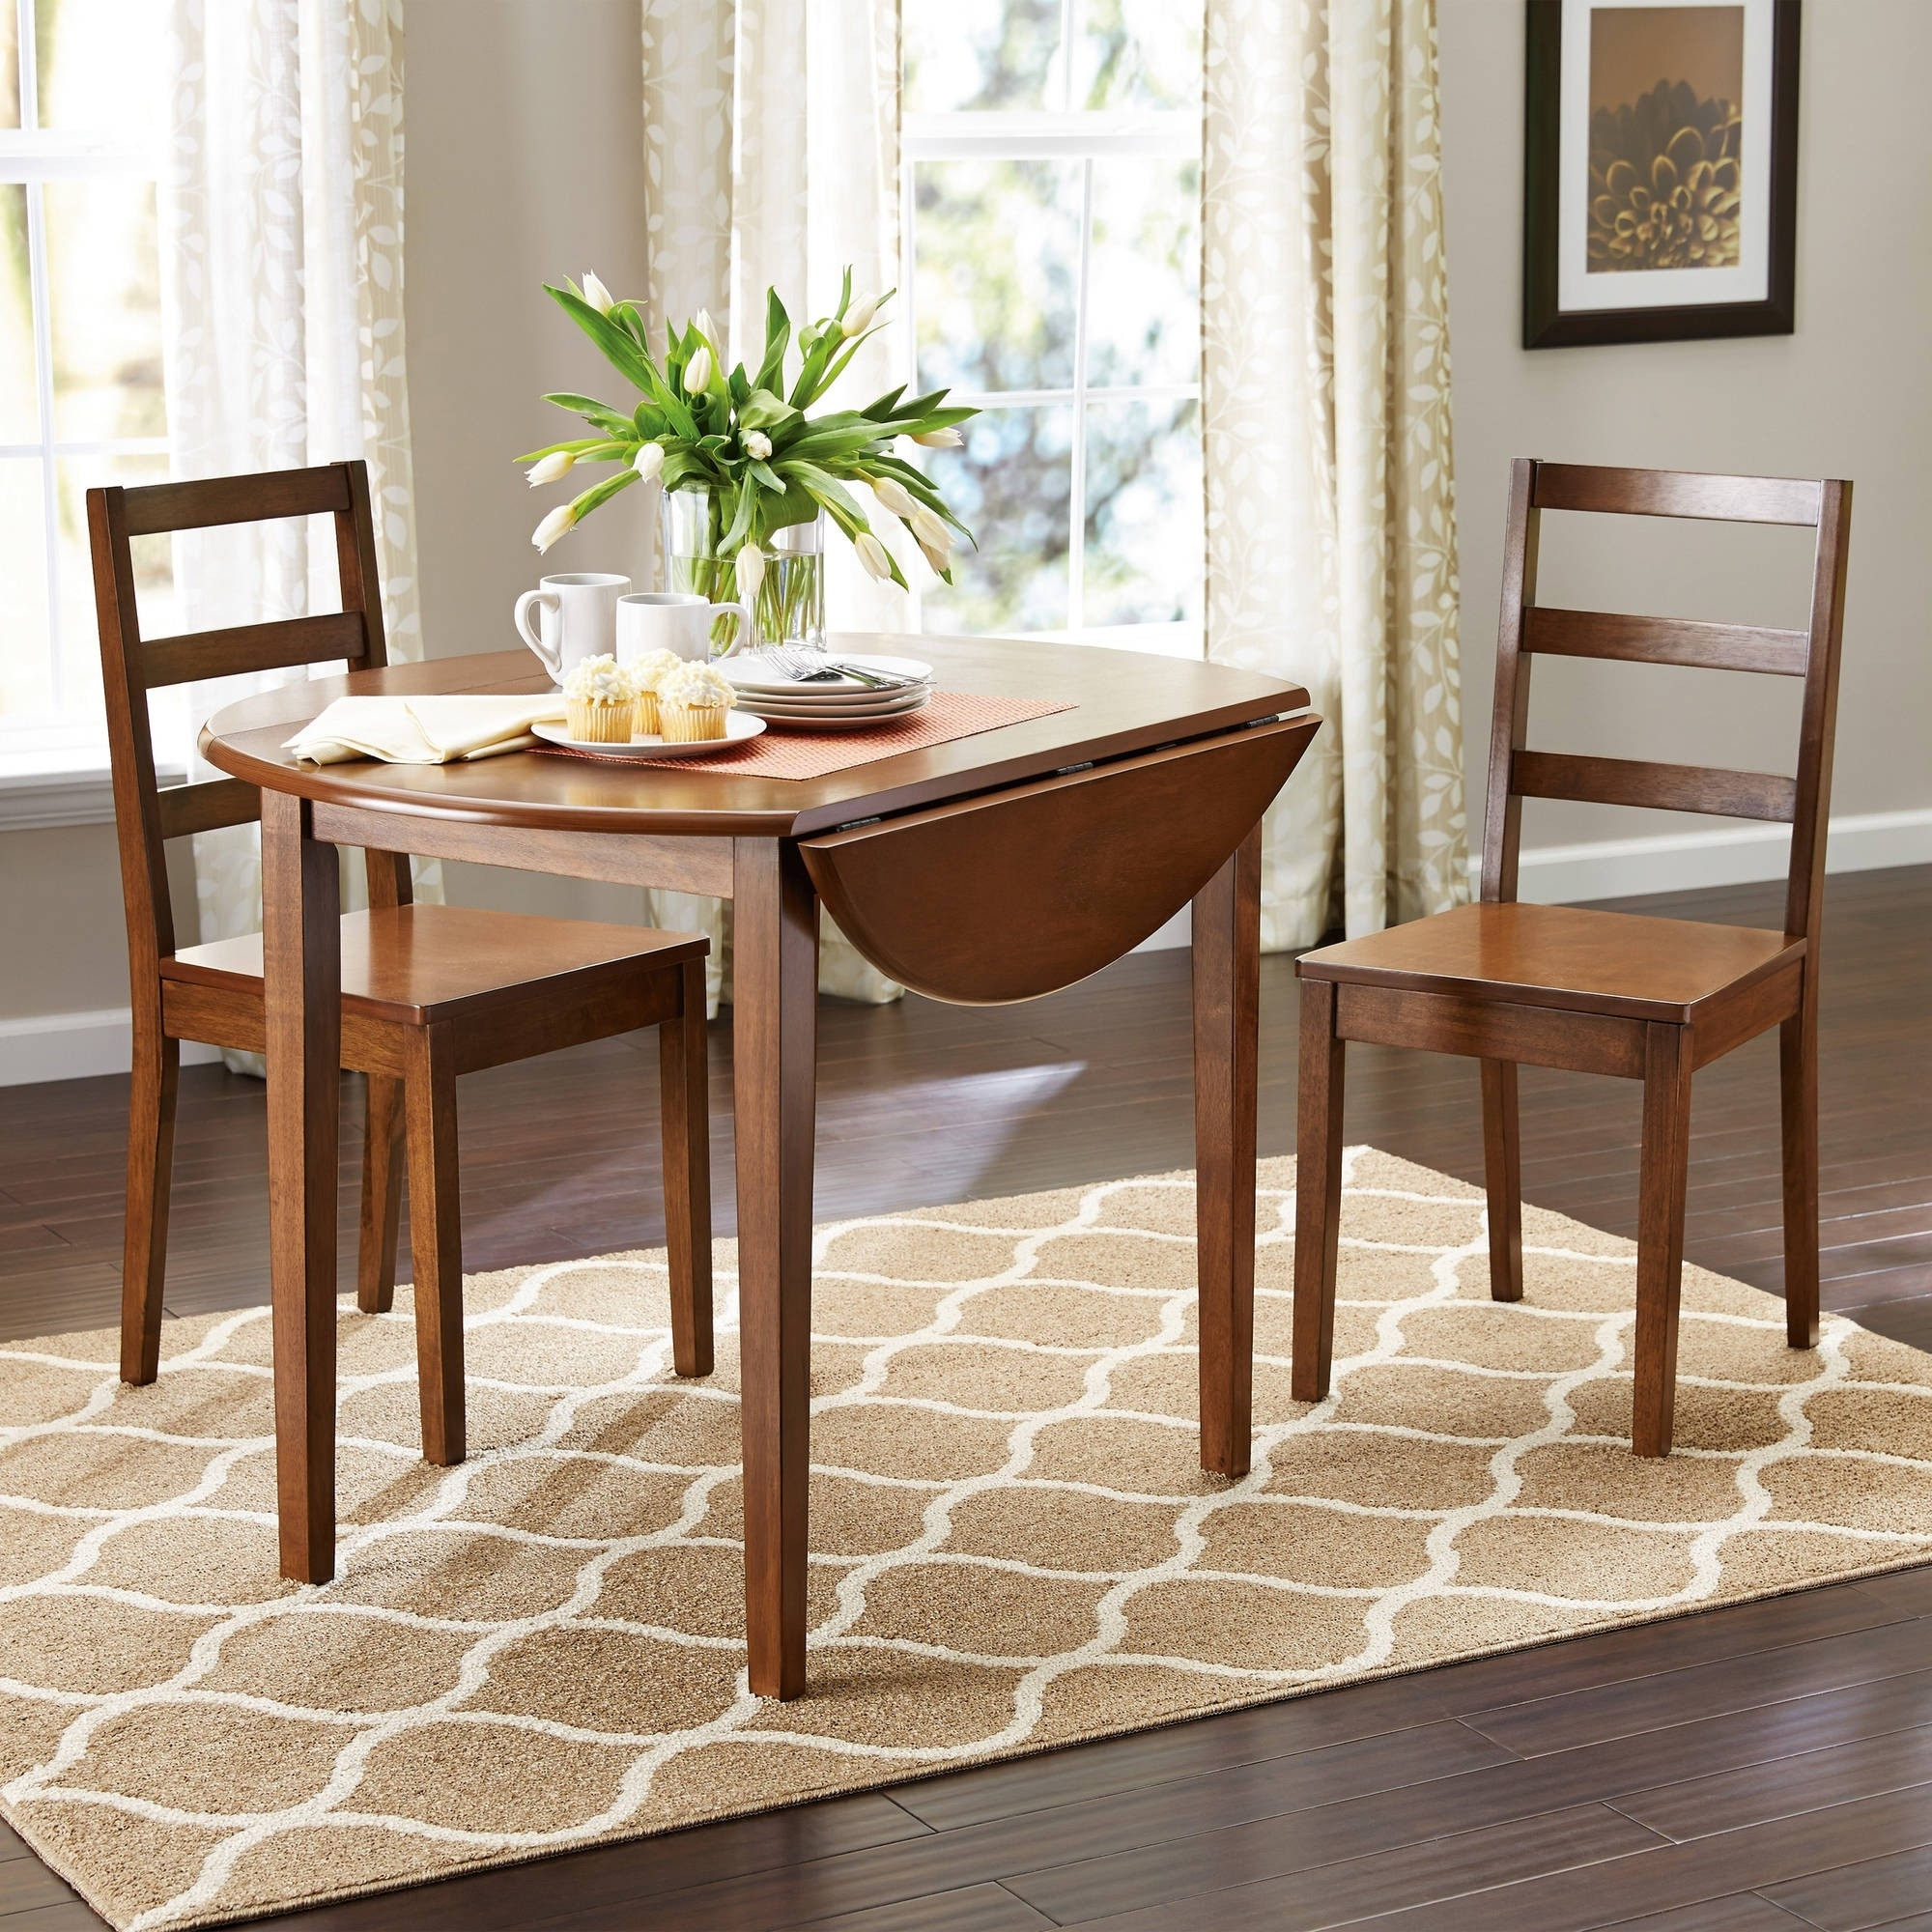 2017 The 21 Beautiful Dining Room Tables Round With Leaves for Two Person Dining Table Sets